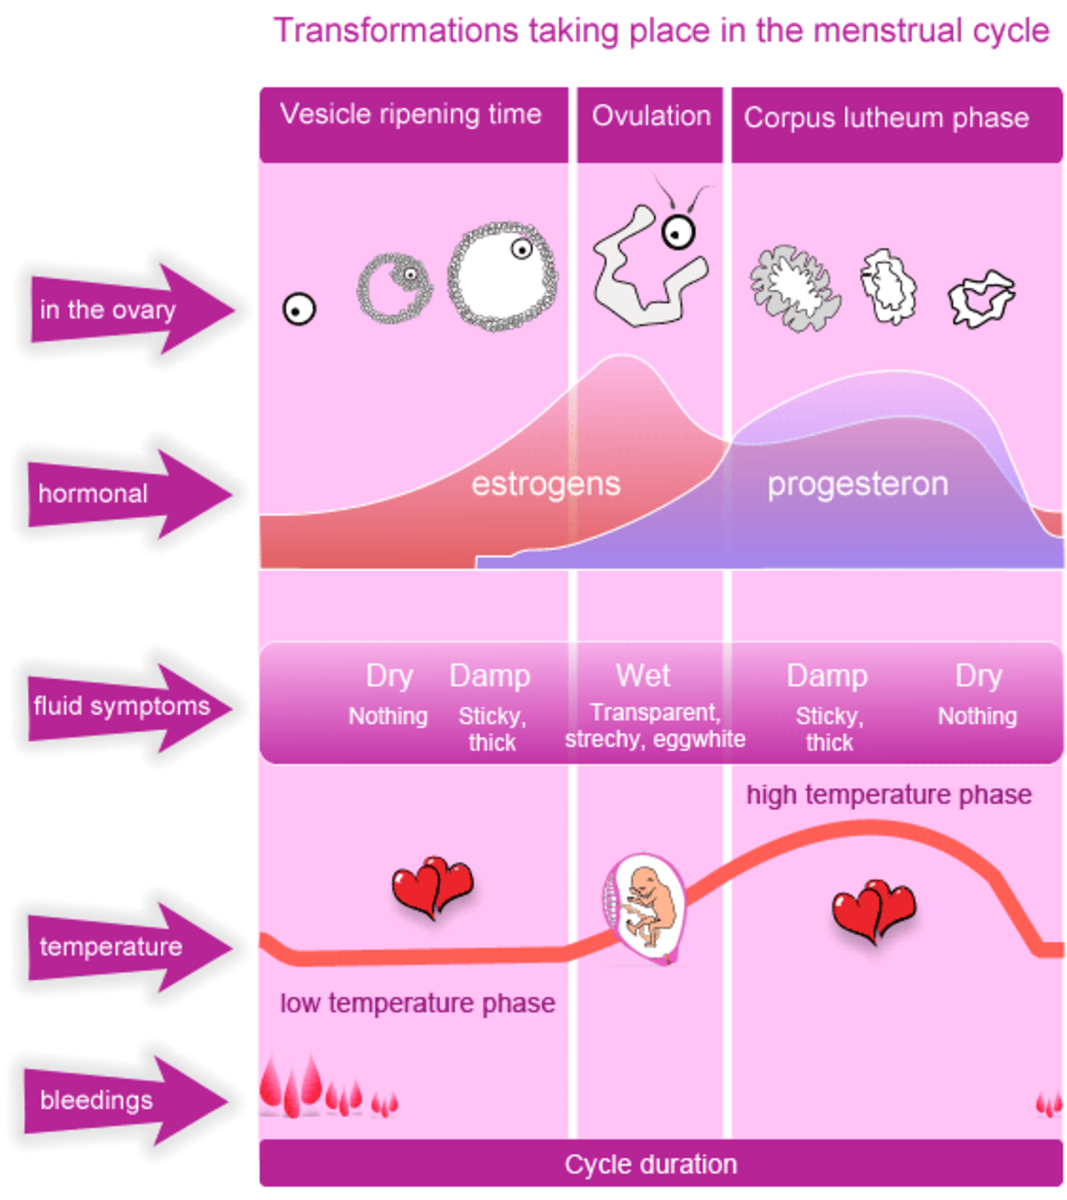 The Phases of Menstrual Cycle